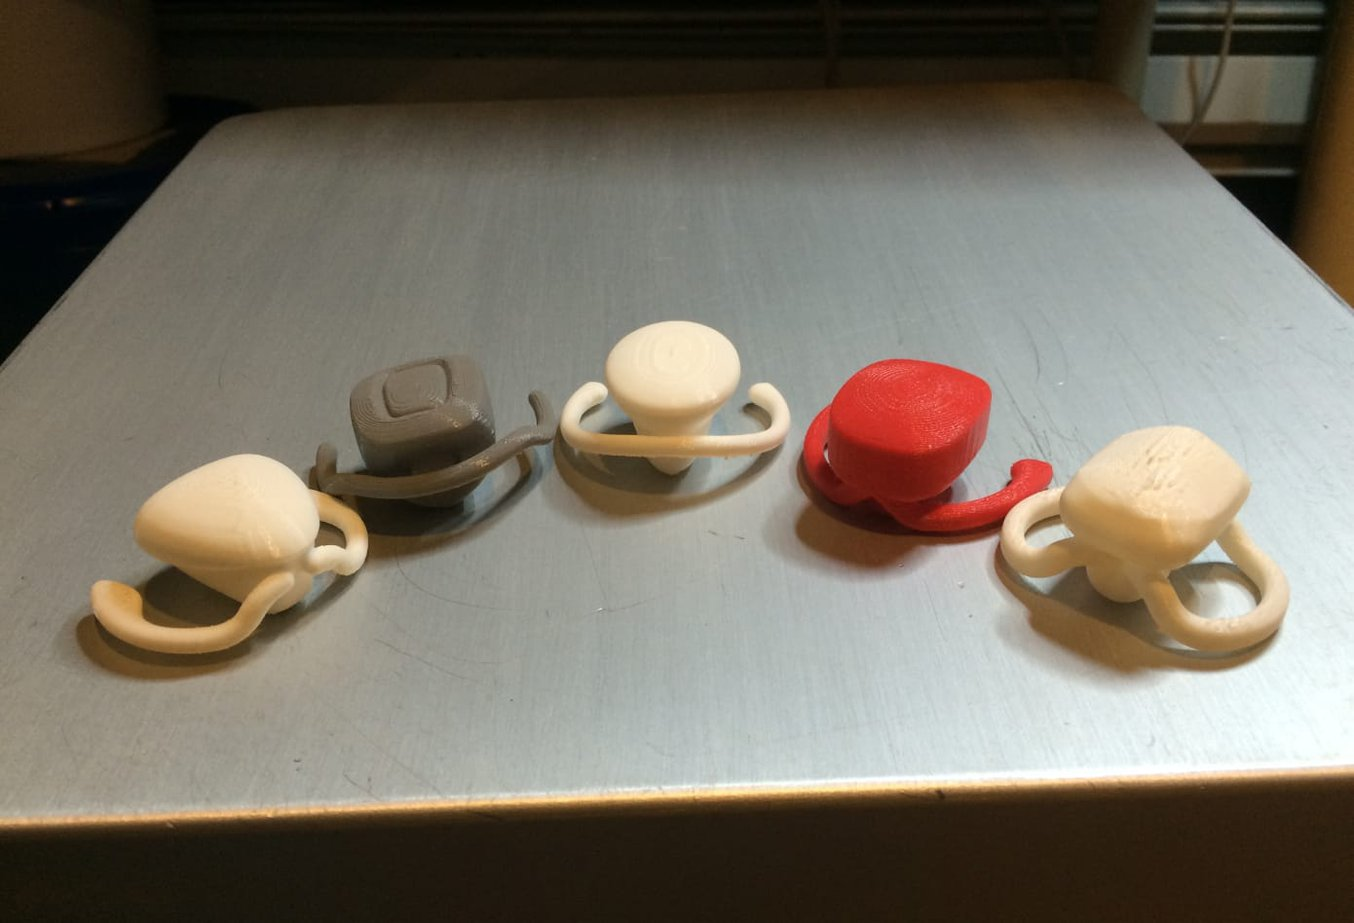 Taylor Made 3D printed golf club heads